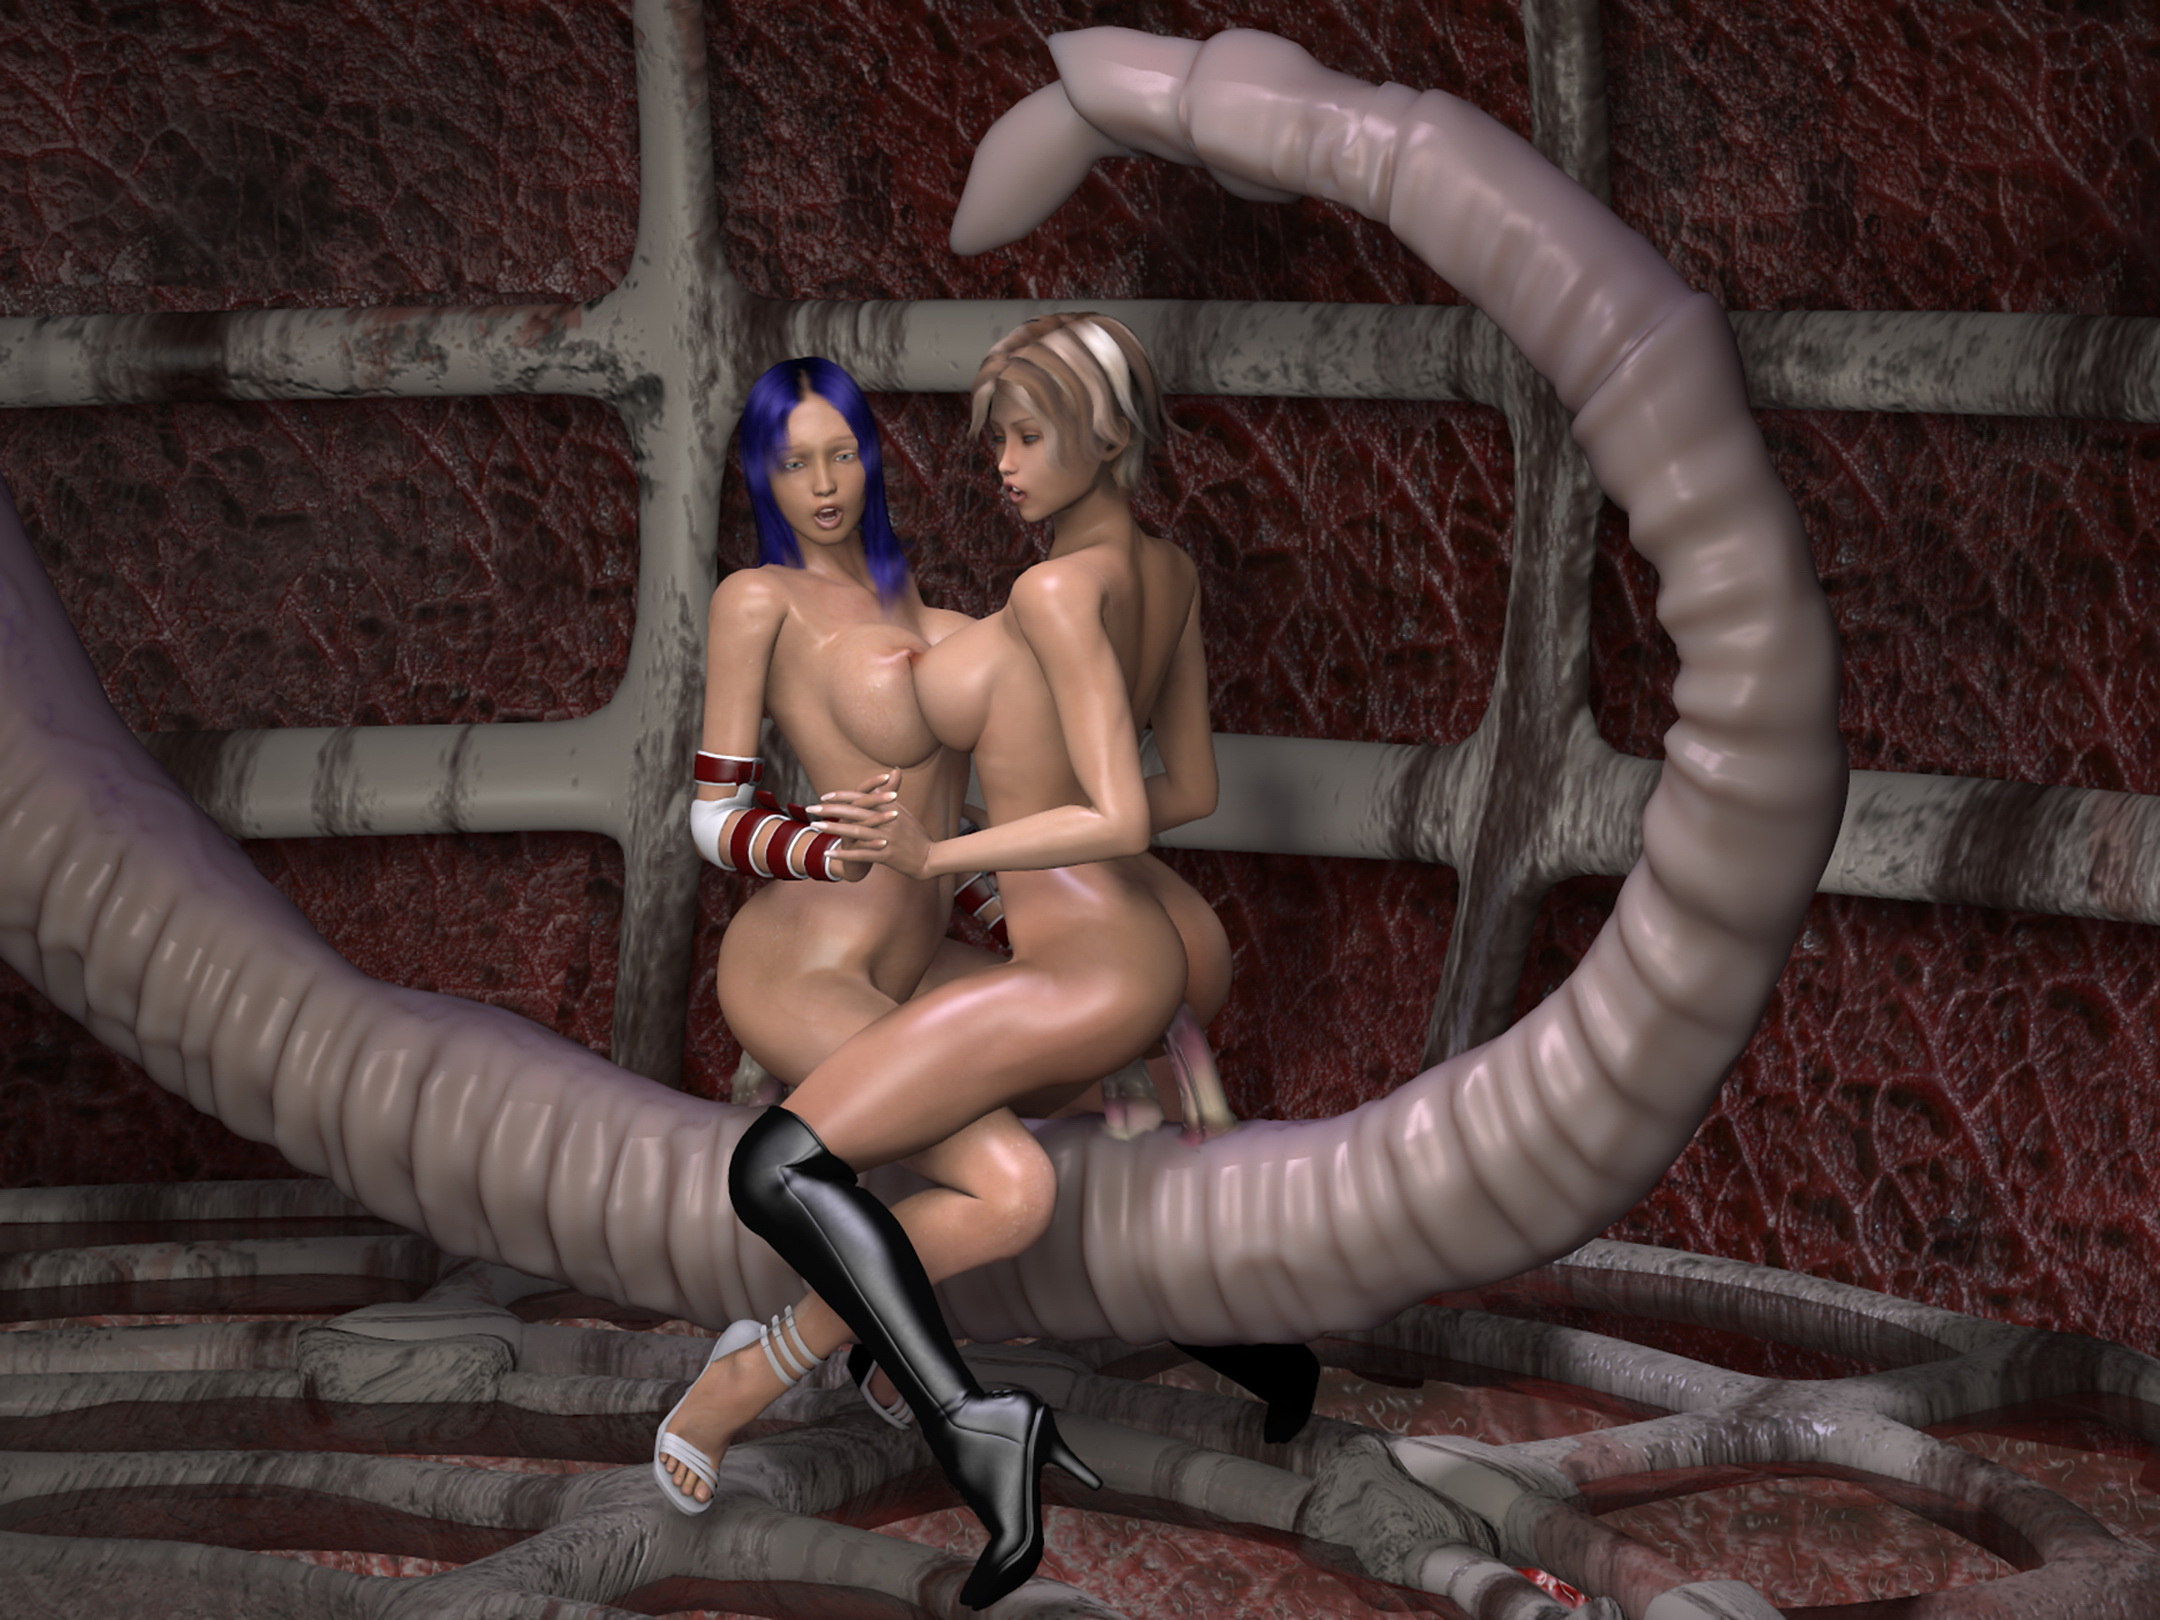 Fantasy sex monsters pleasuring girls porn photo